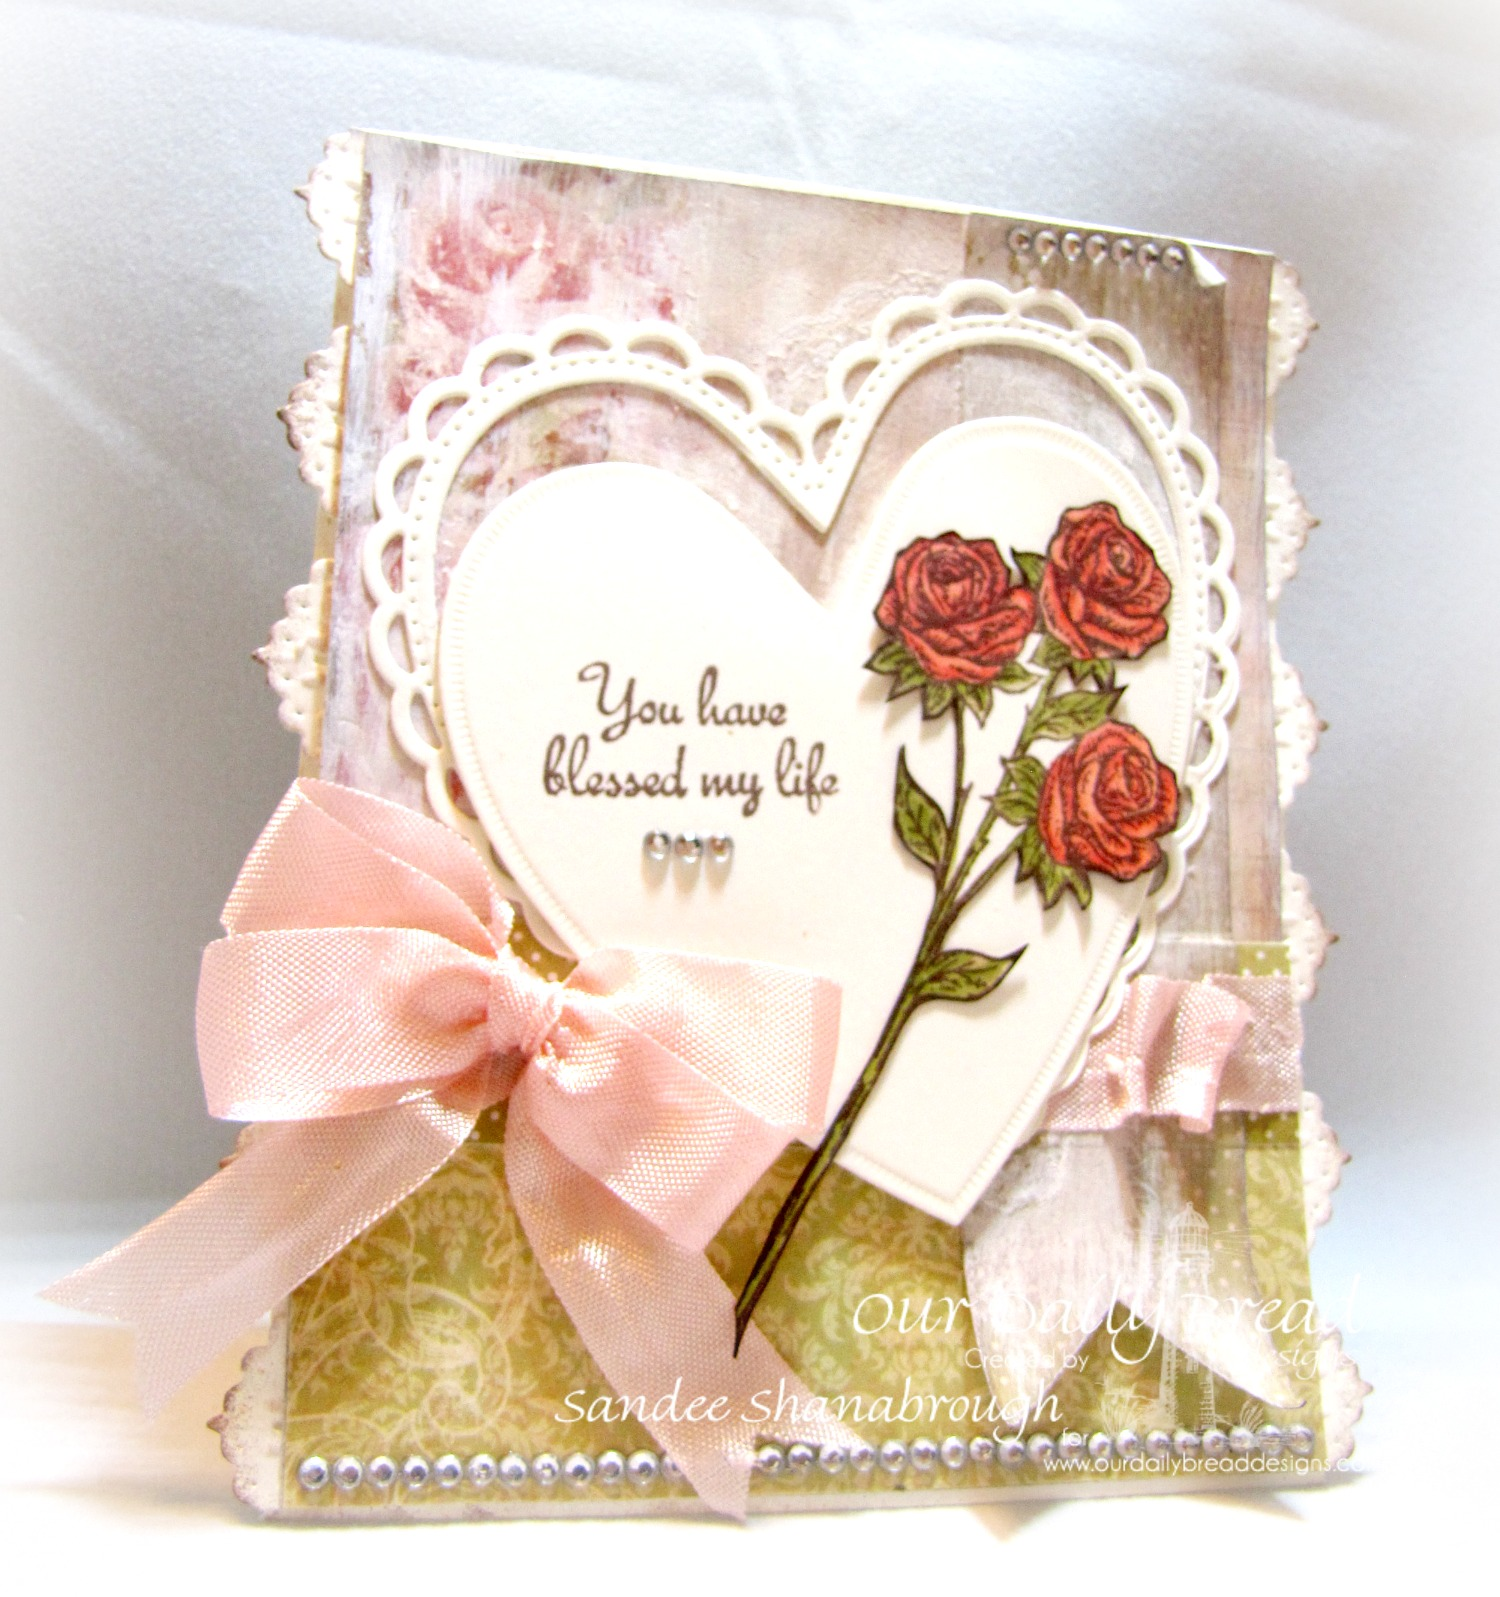 Stamps - Our Daily Bread Designs Rose, ODBD Custom Ornate Hearts Die, ODBD Blushing Rose Paper Collection